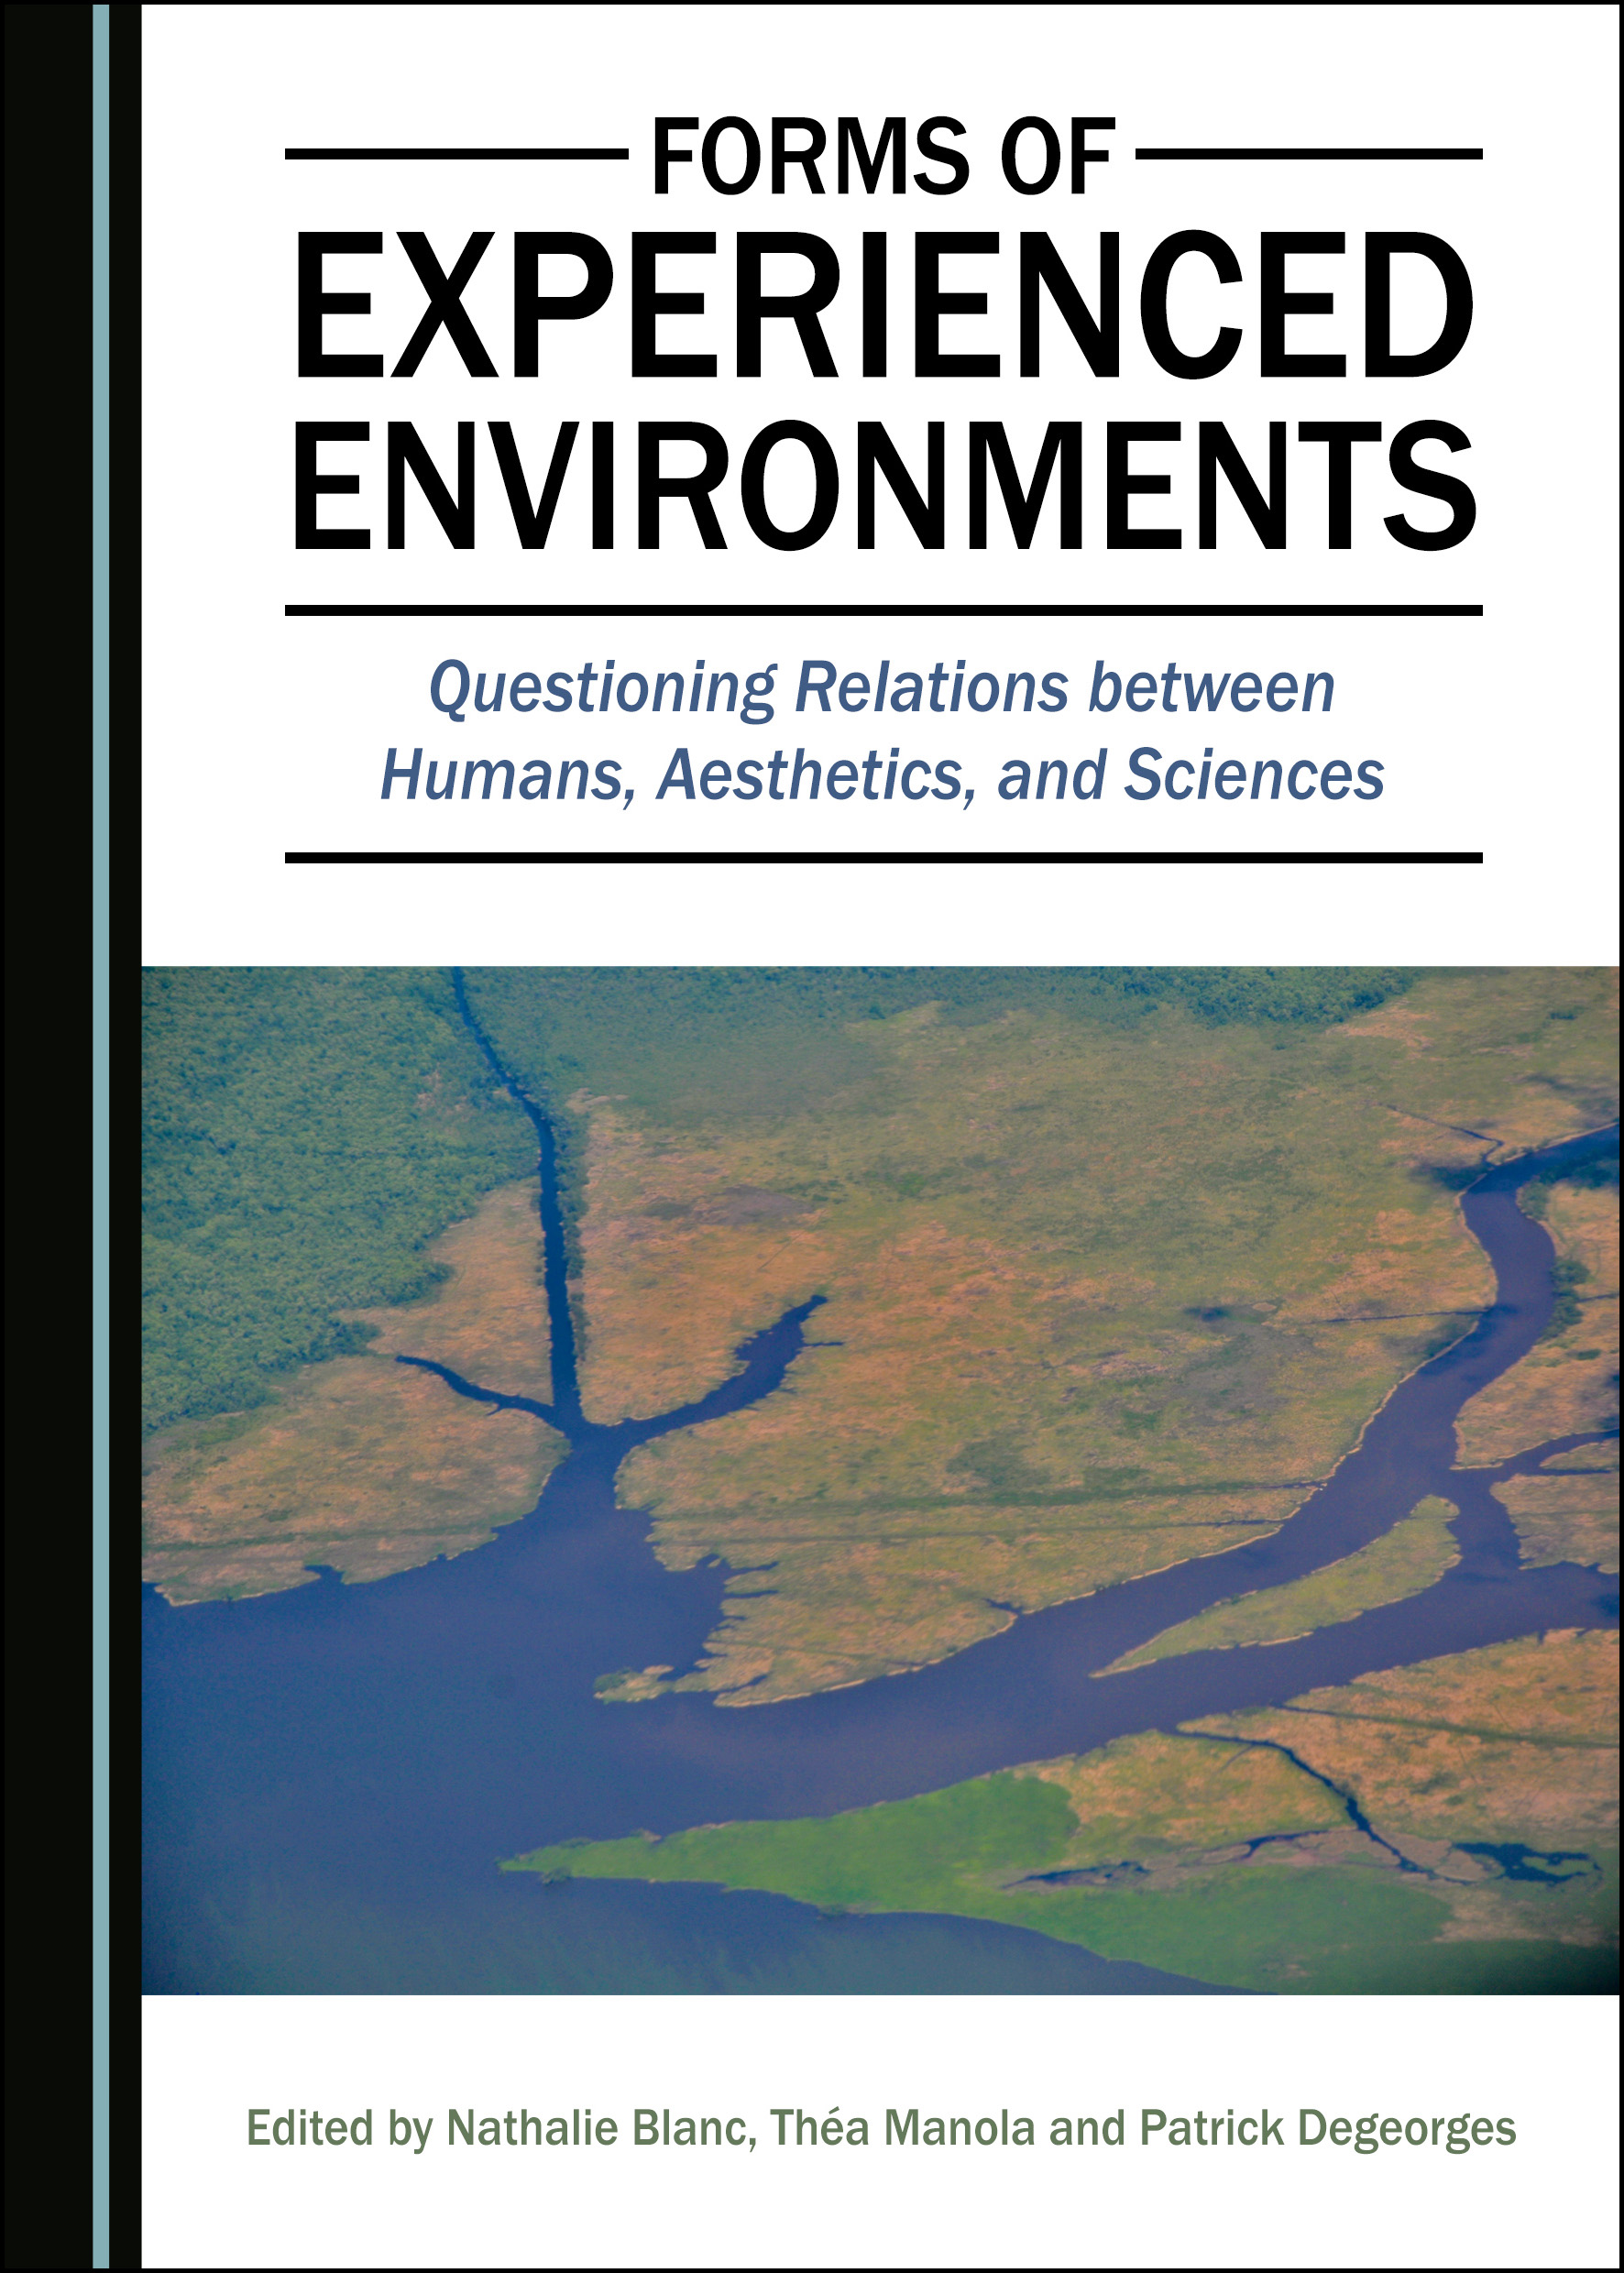 Forms of Experienced Environments: Questioning Relations between Humans, Aesthetics, and Sciences